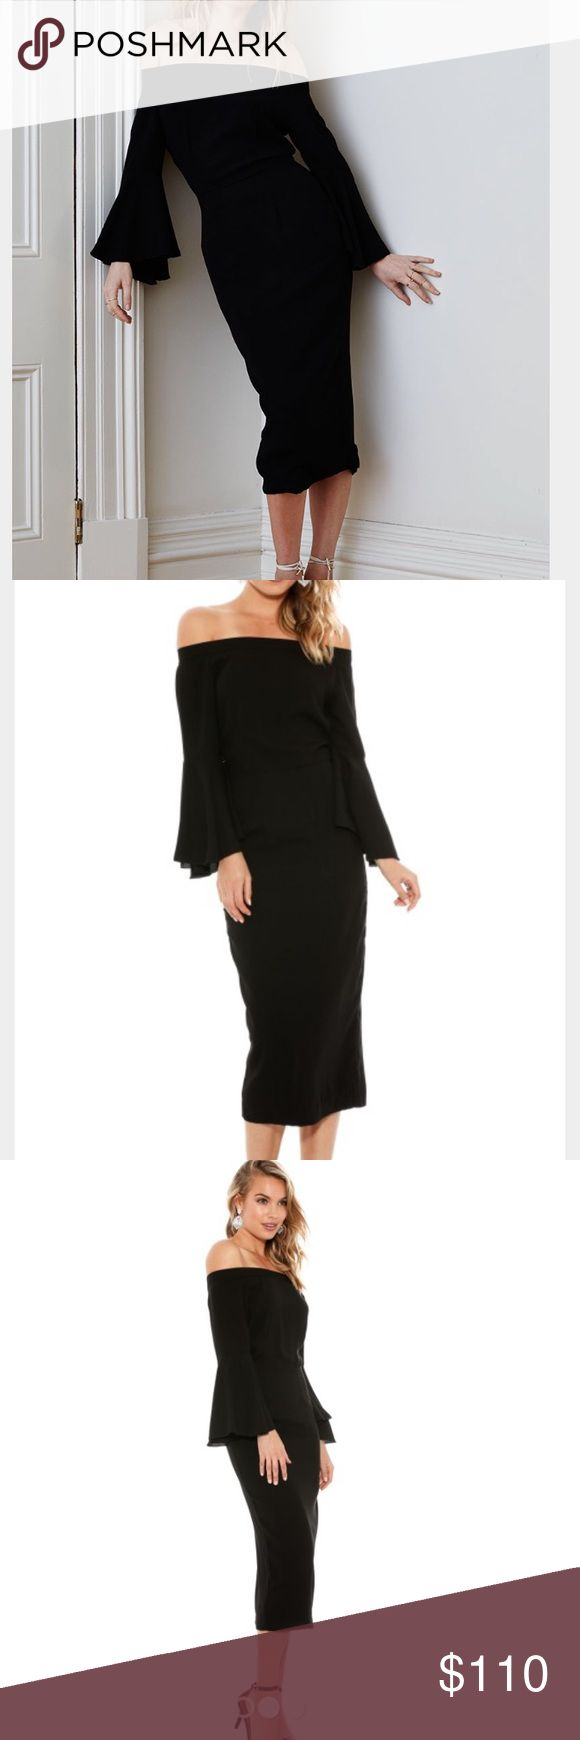 Maurie & Eve Lucy in the Sky with Diamonds dress Modern twist on a LBD. Accentuates your curves as it streamlines your body with this feminine cut. Love, love the flirty bell sleeves. Wore this little number once for a wedding and was a great hit! ❤️ Maurie & Eve Dresses Midi